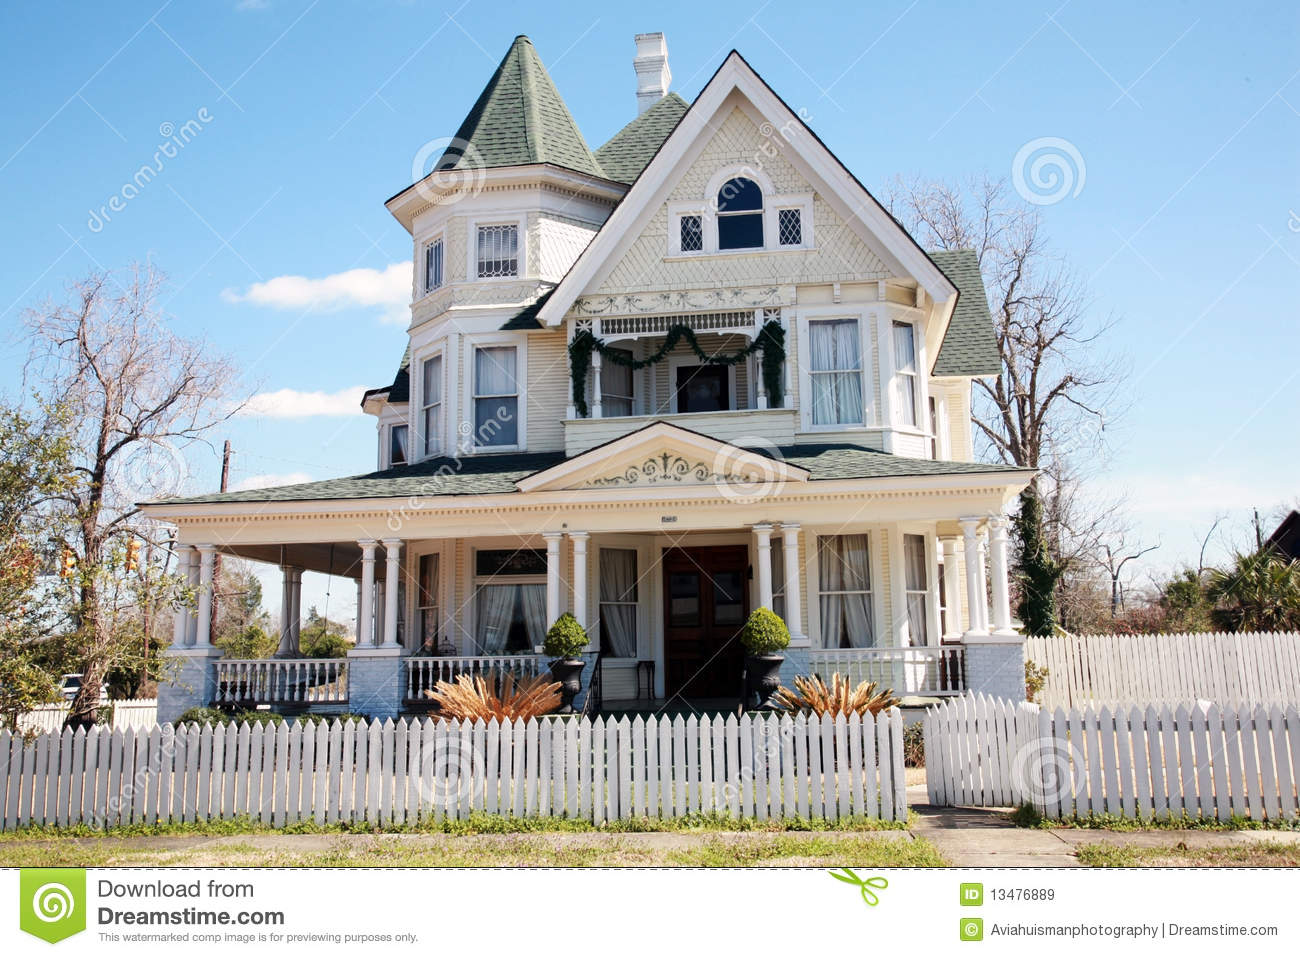 plans modern barn house style victorian house plans large victorian home plan ld st floor master suite butler